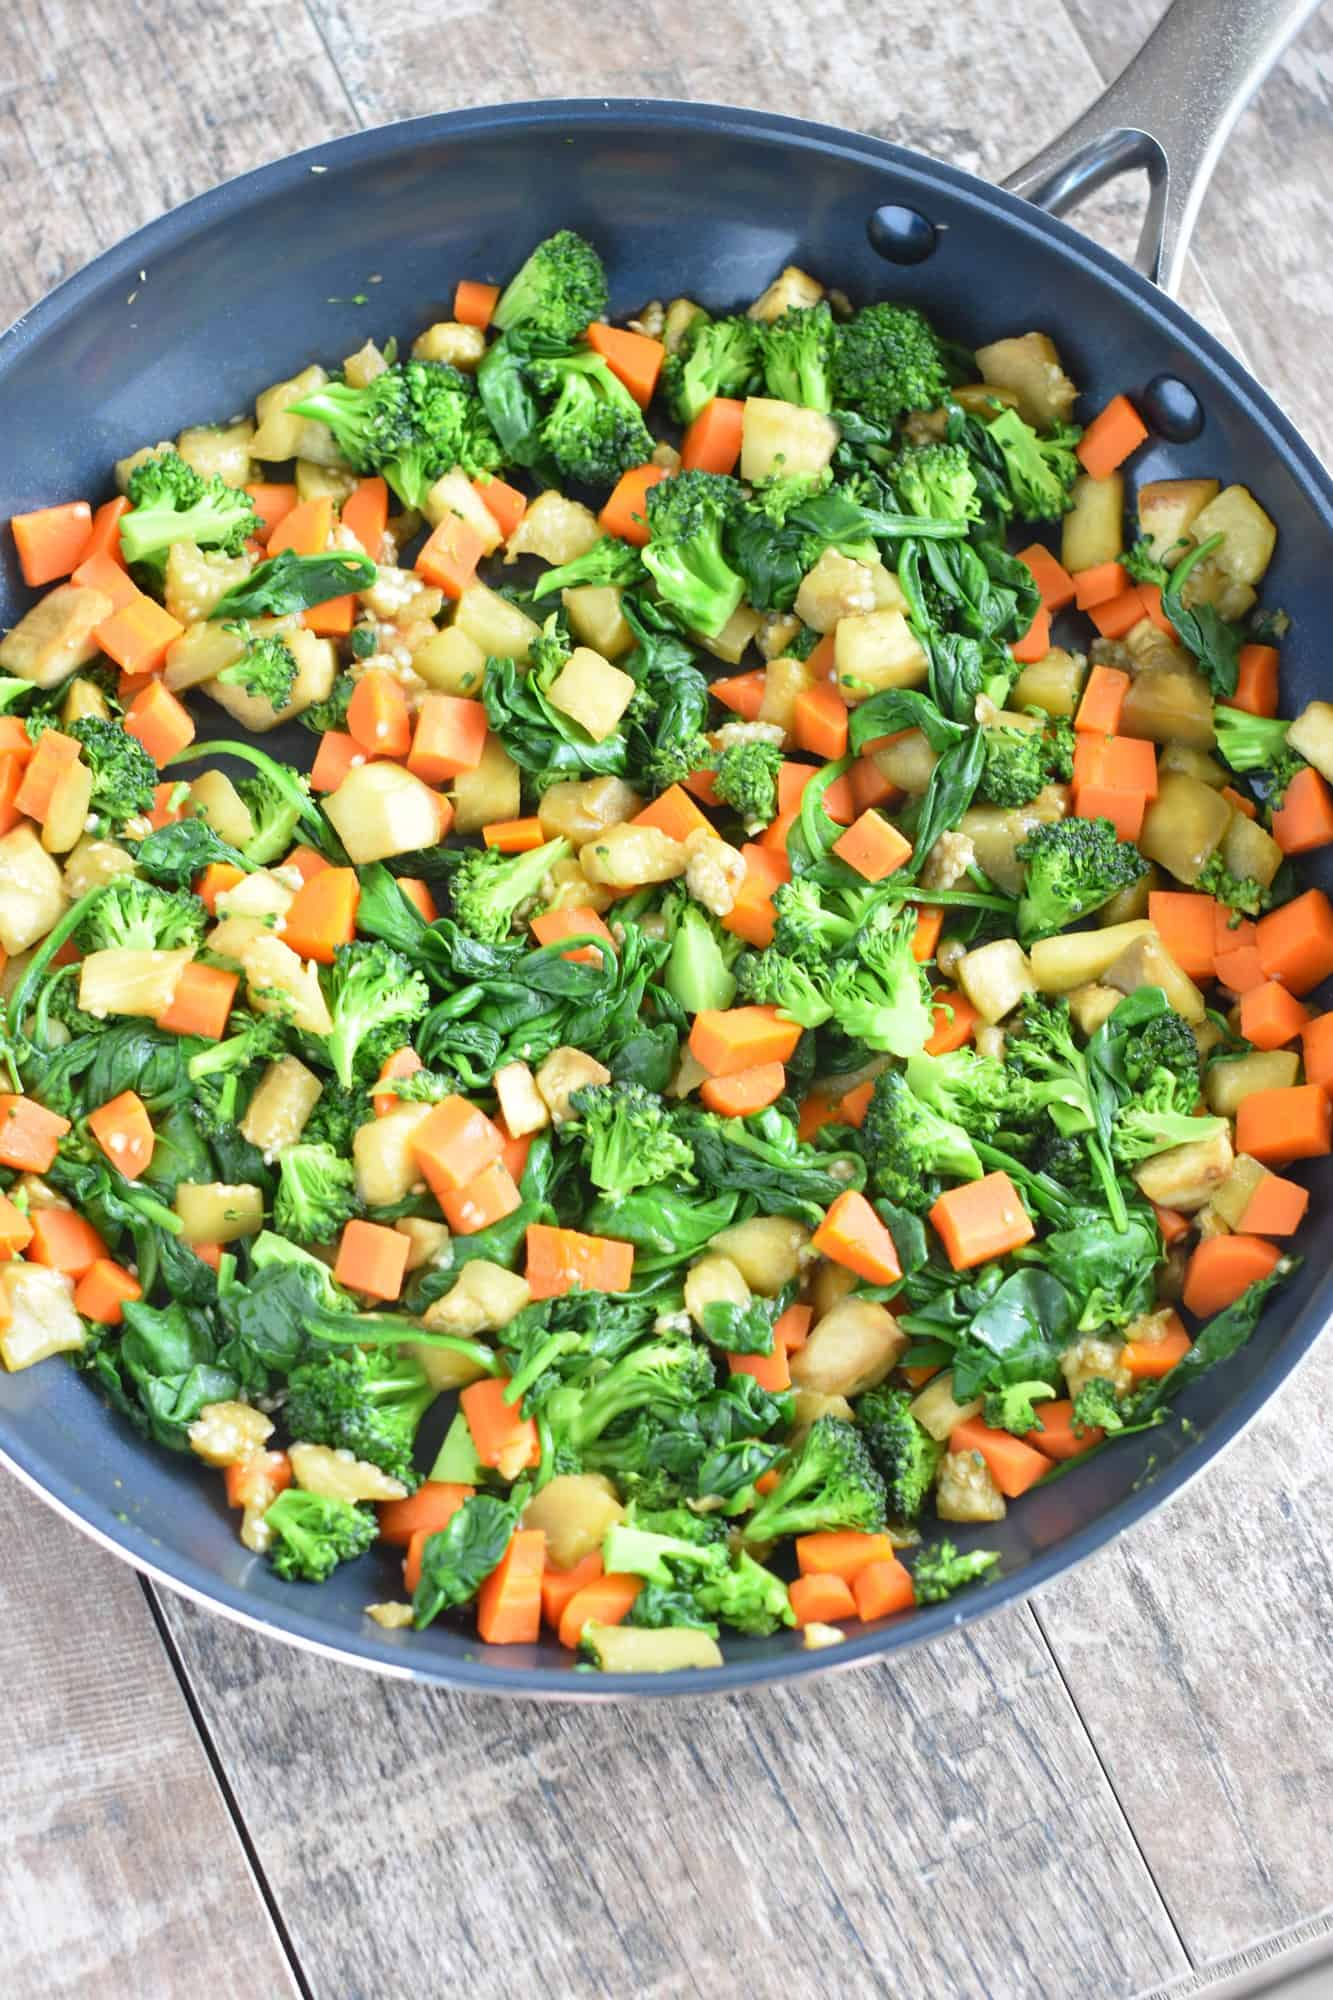 Cooked veggies in skillet